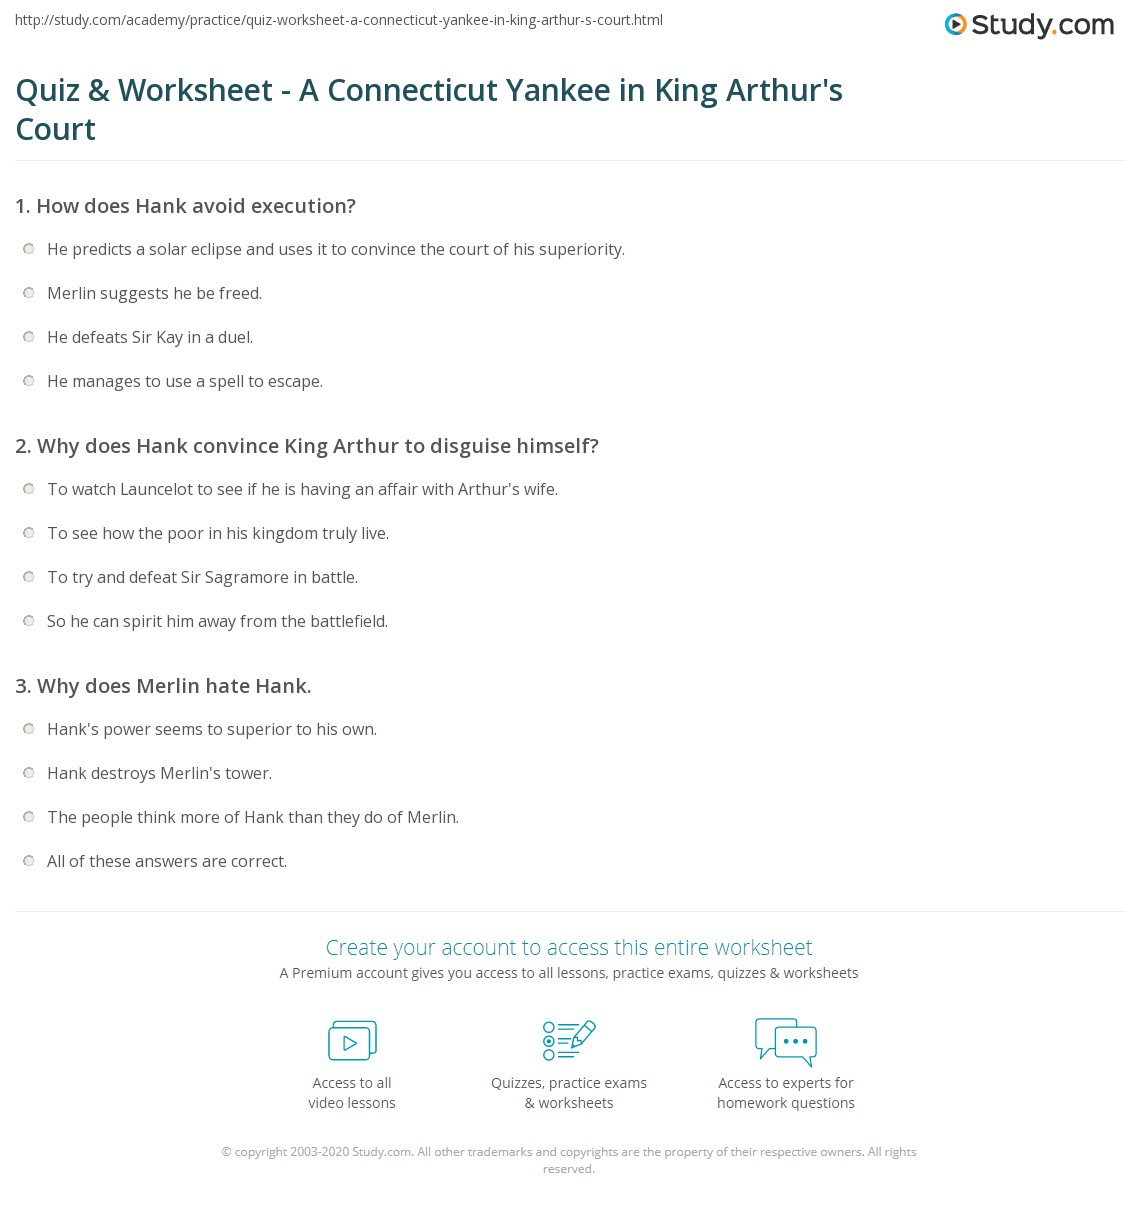 Quiz worksheet a connecticut yankee in king arthurs court print a connecticut yankee in king arthurs court summary analysis worksheet xflitez Gallery